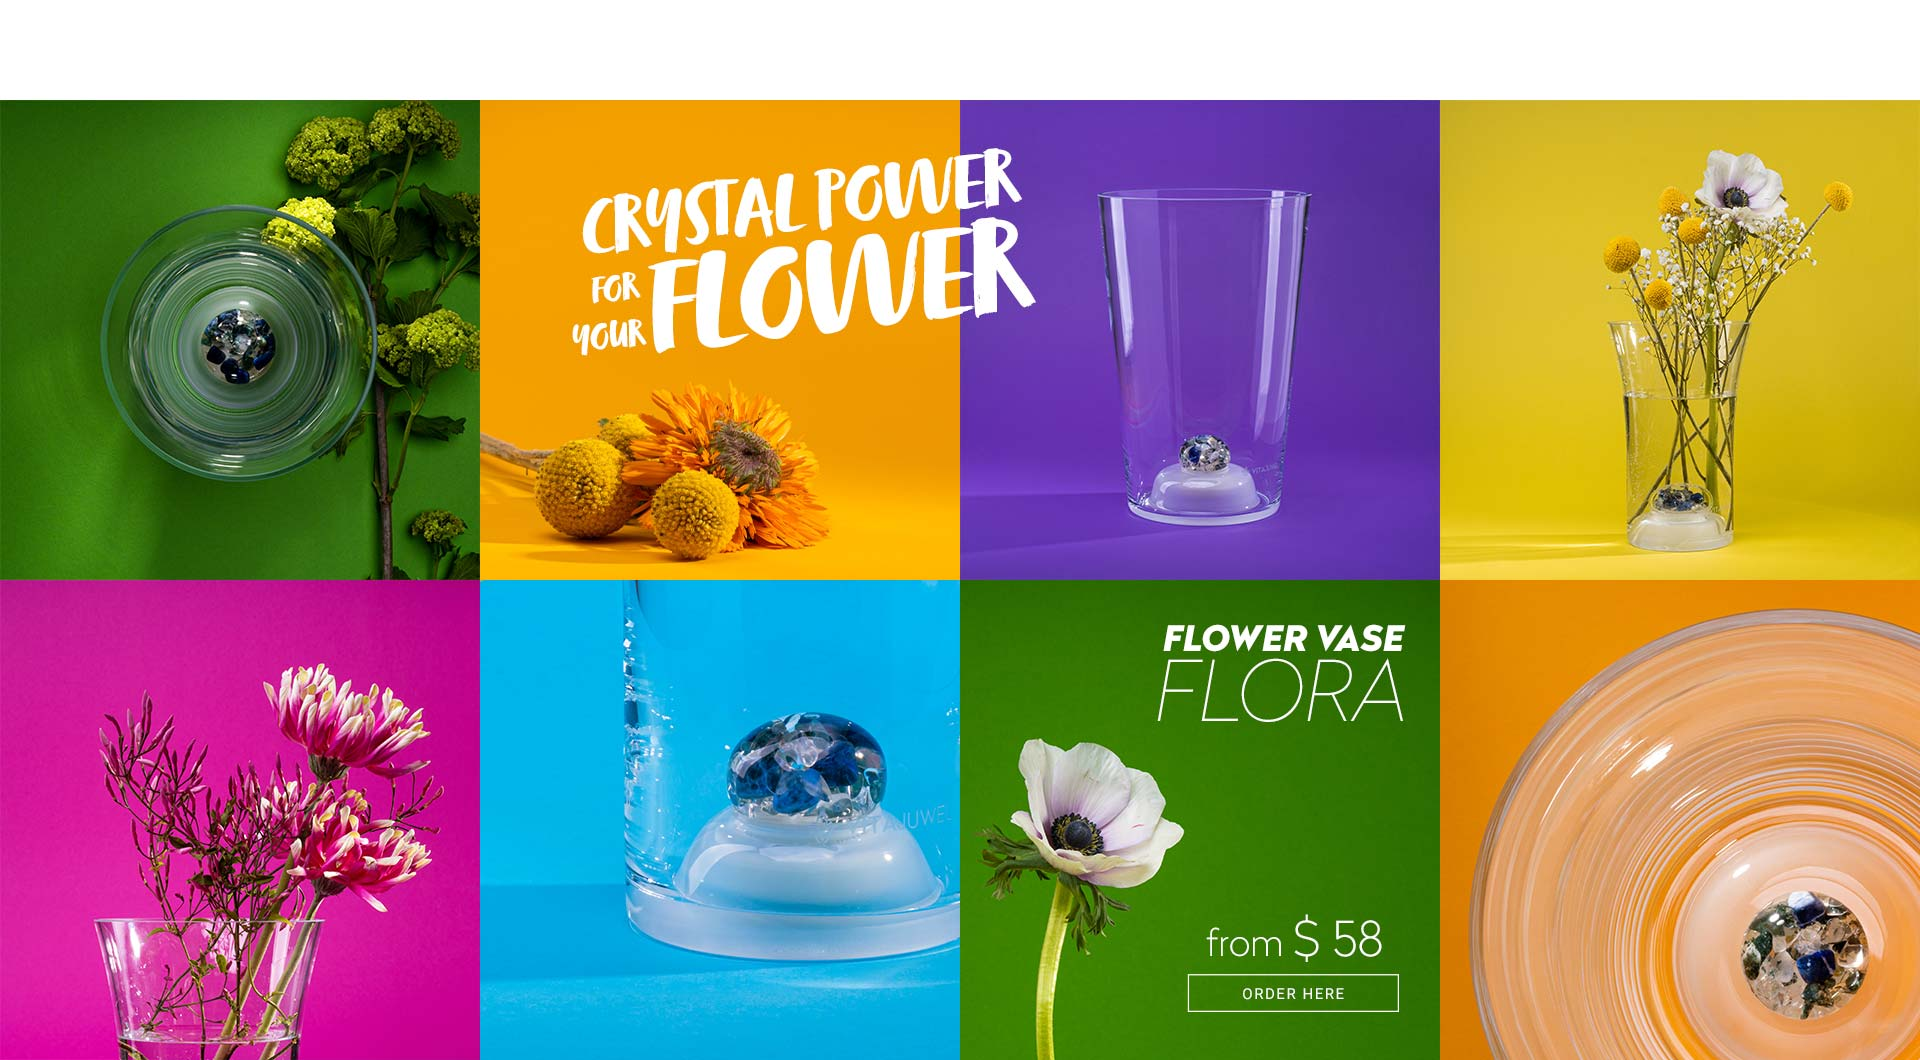 vitajuwel crystals glass flower vase flora